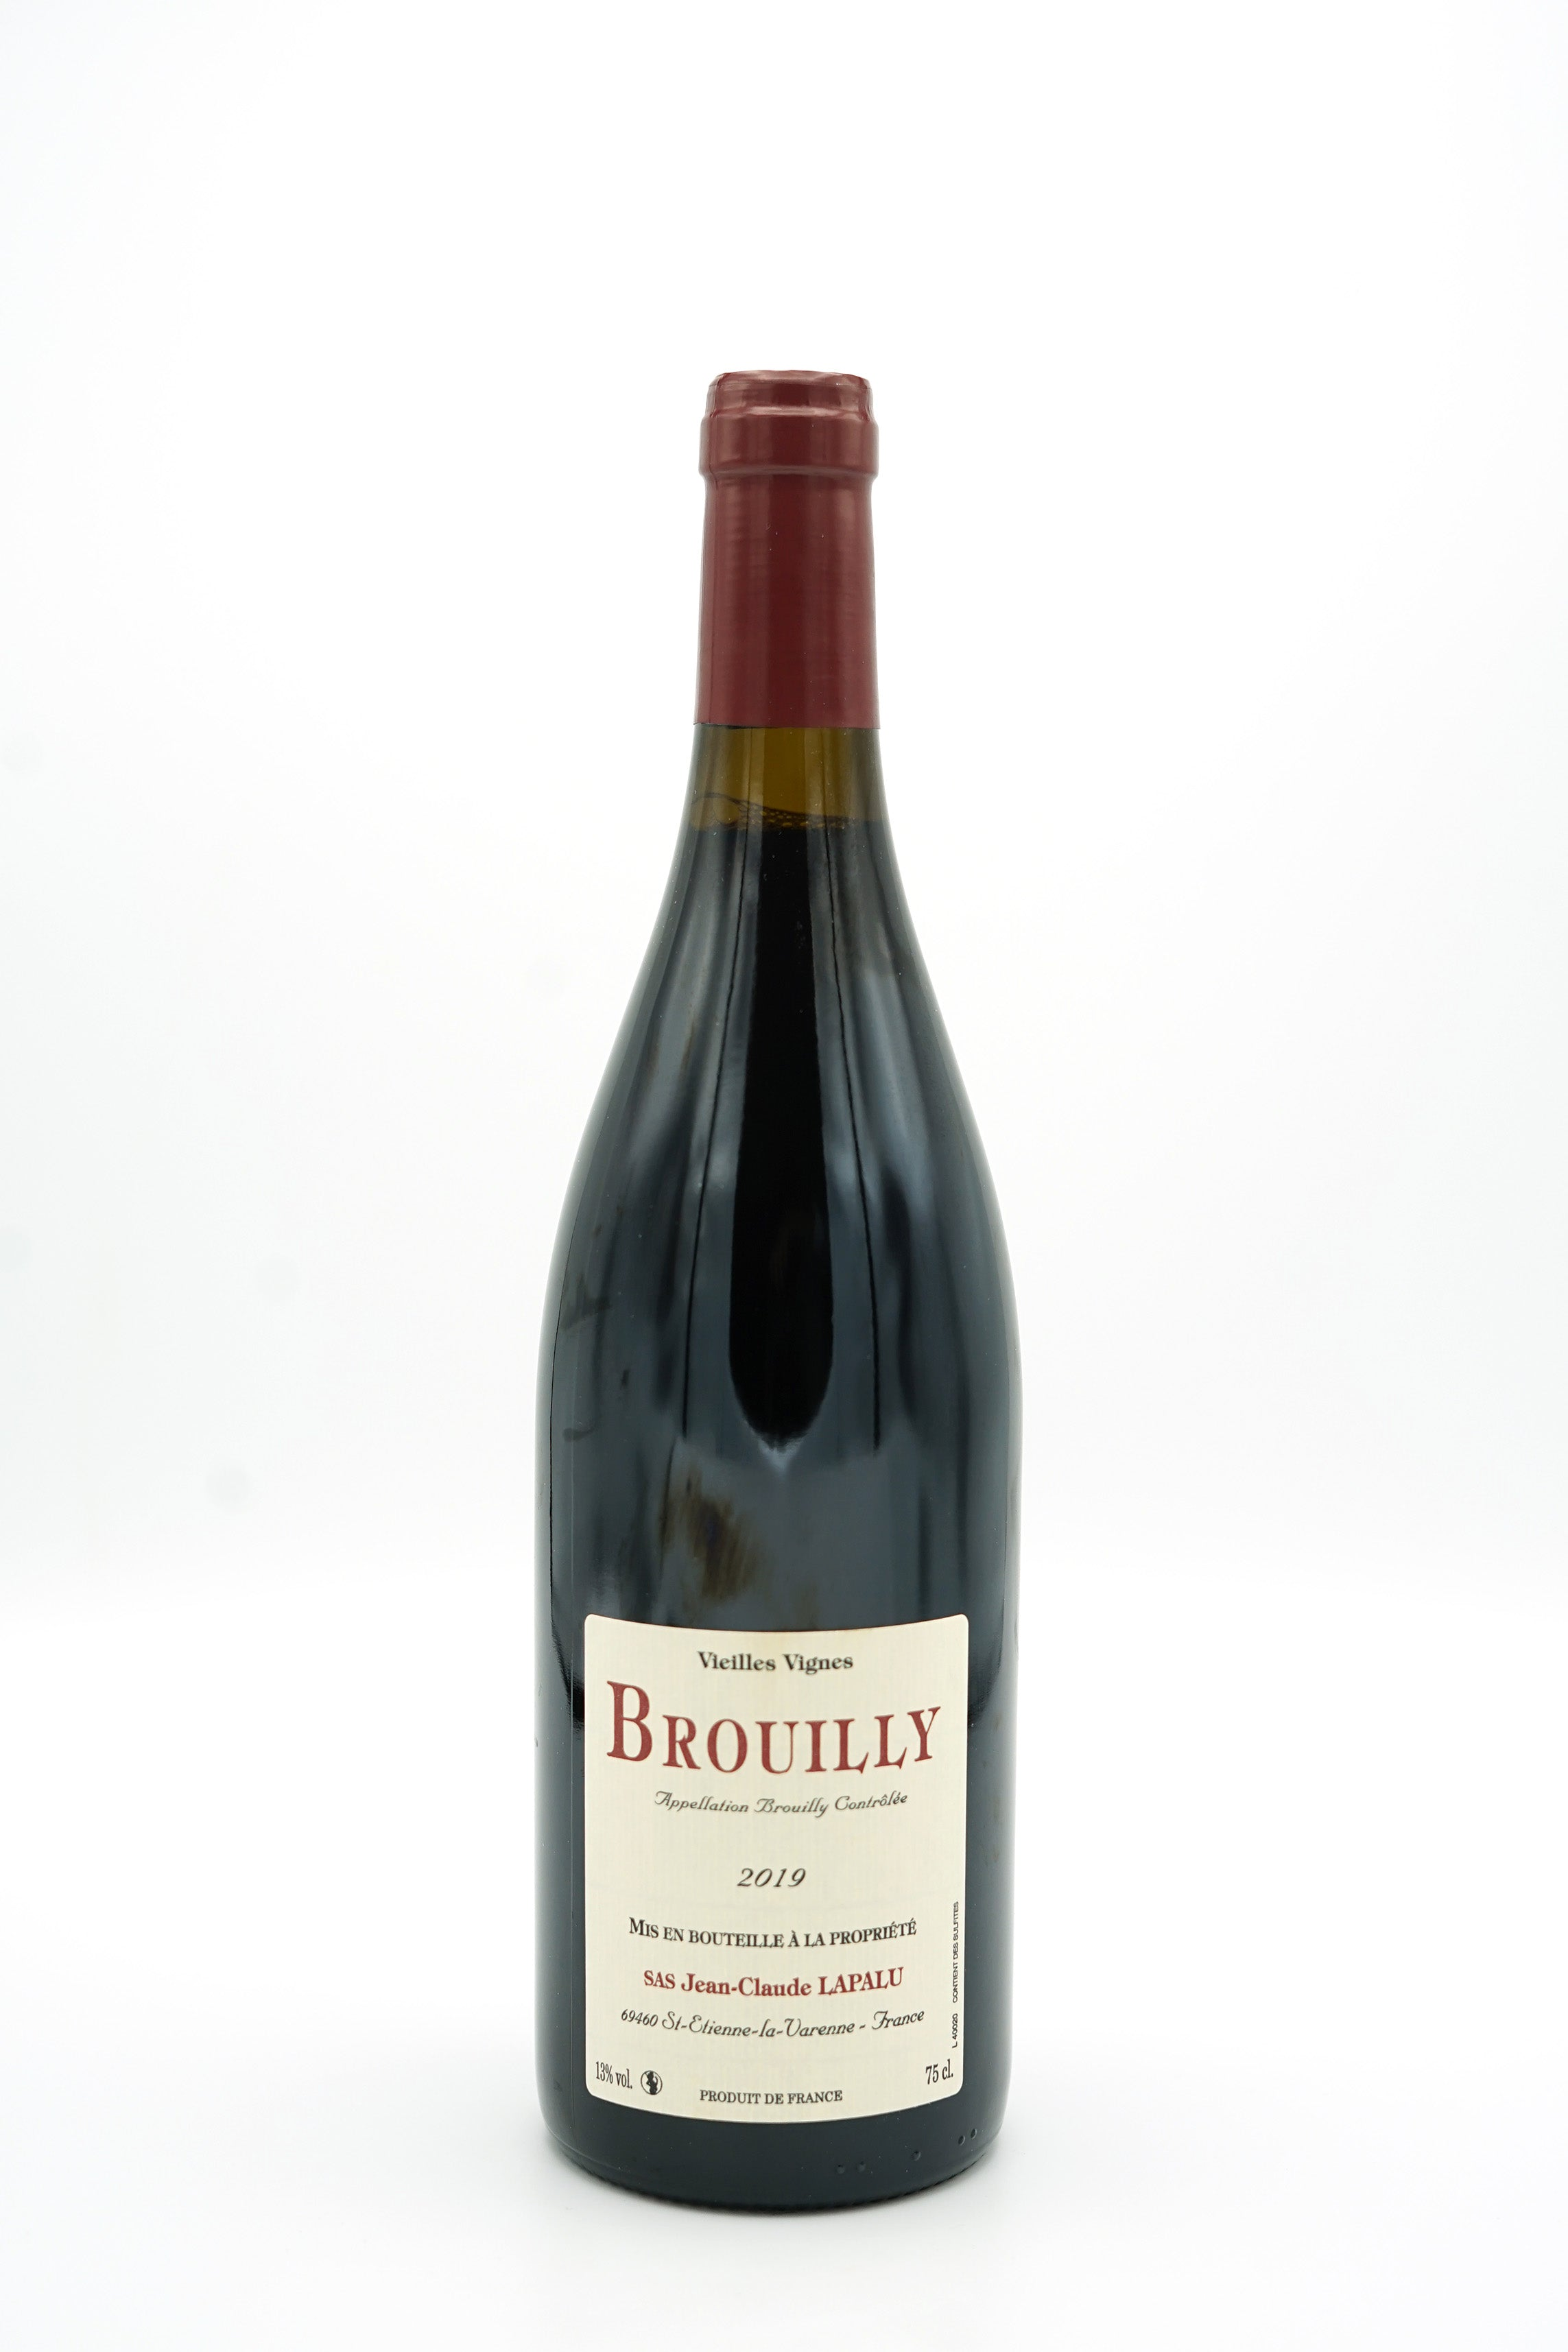 Brouilly VV 2019 - Domaine Jean-Claude Lapalu